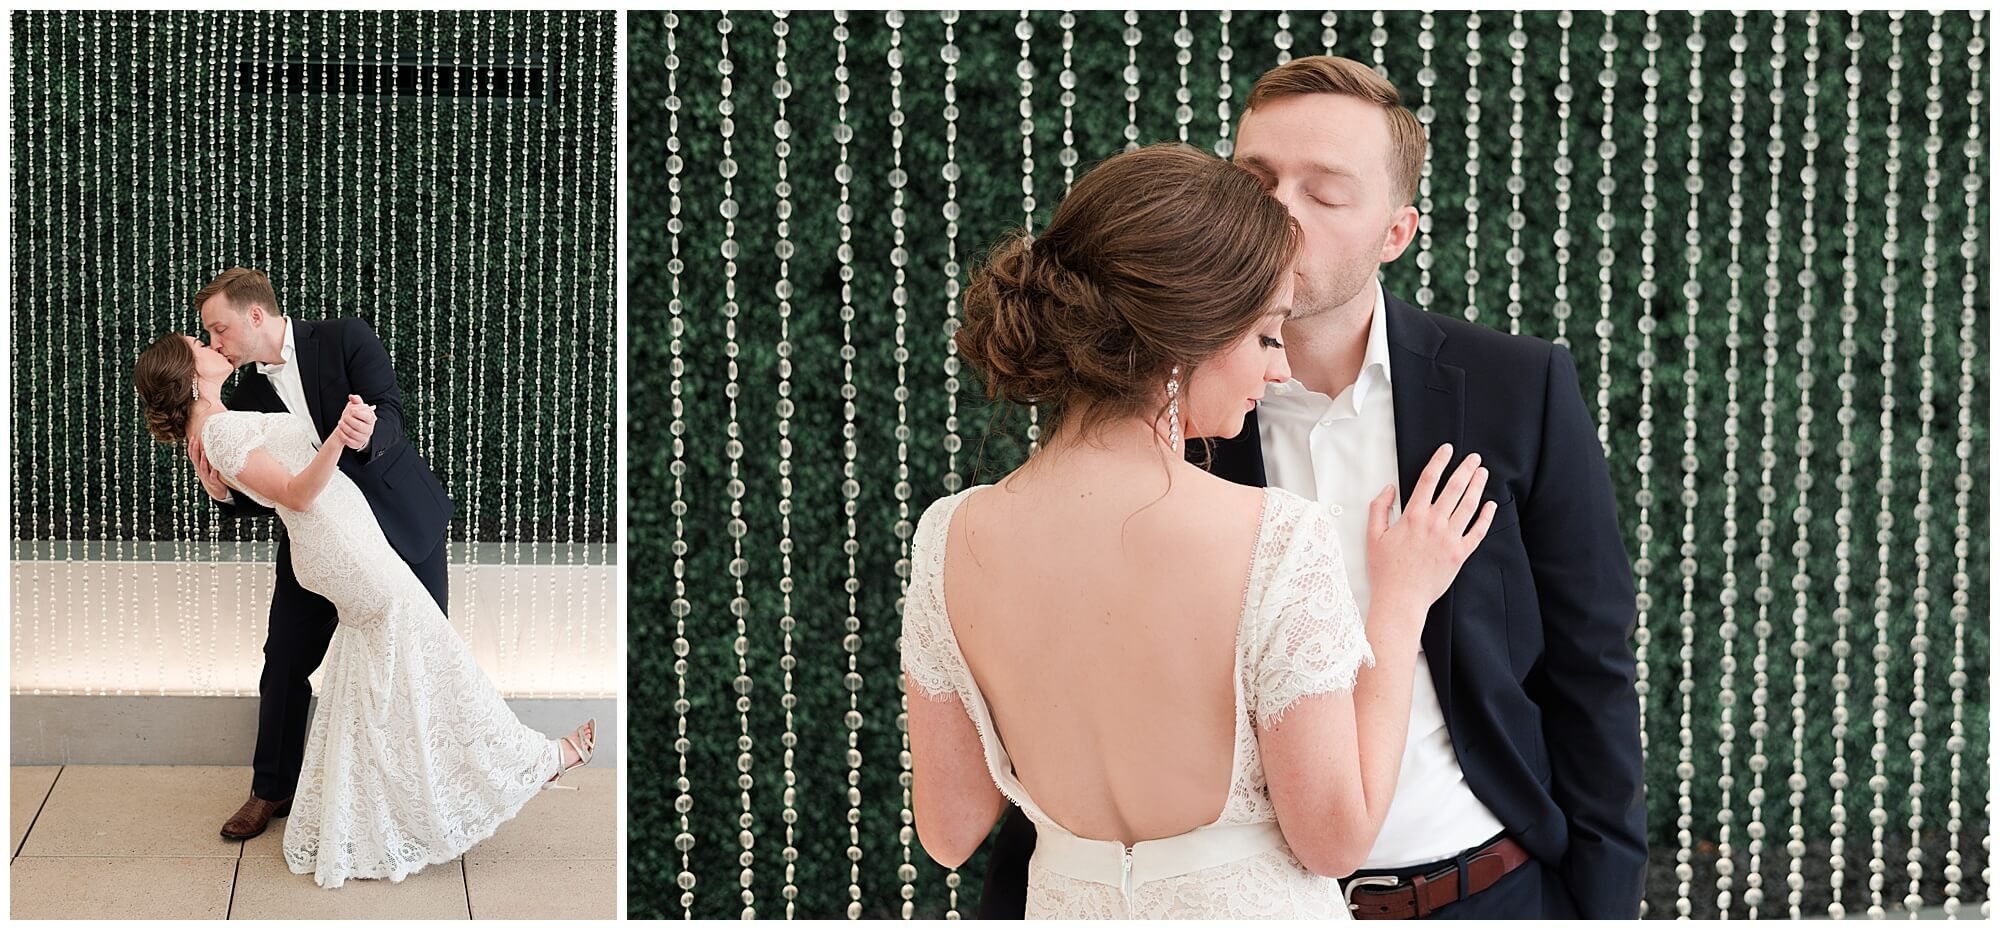 bride and groom first look at Sam Houston Hotel in Houston Texas by wedding photographer Swish and Click